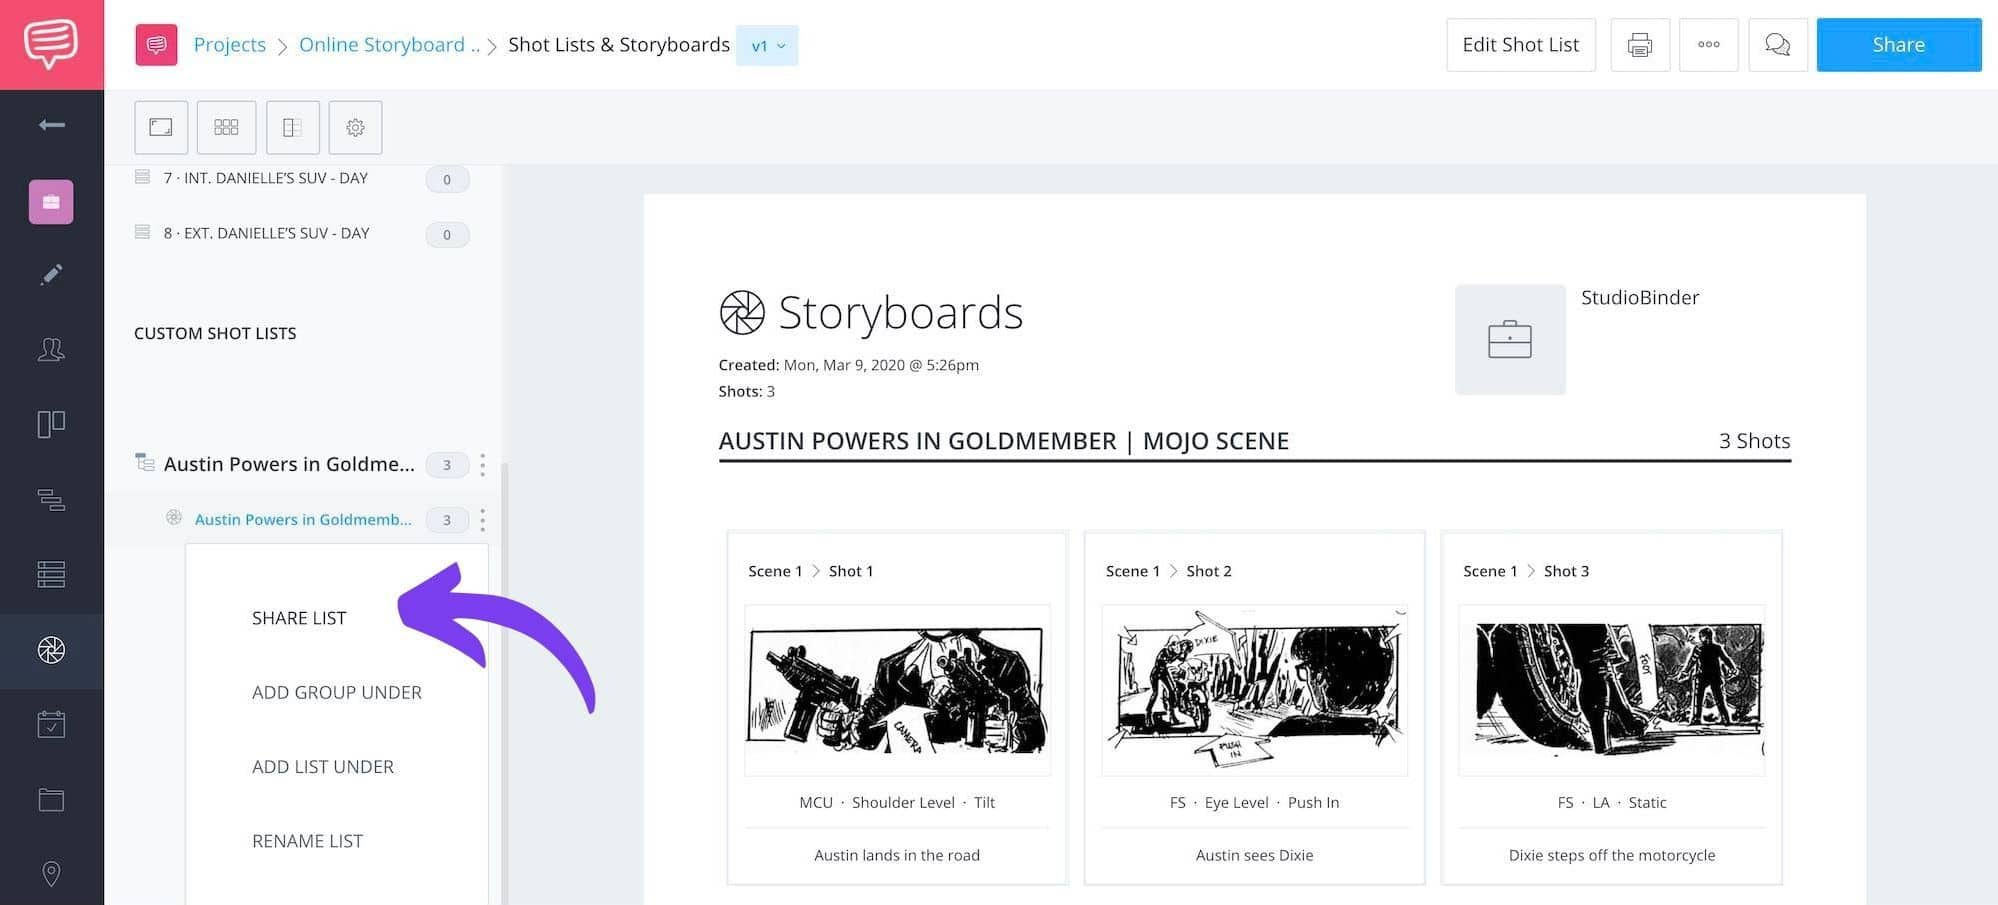 Storyboard Creator Steps - Austin Powers Goldmember - StudioBinder - 19